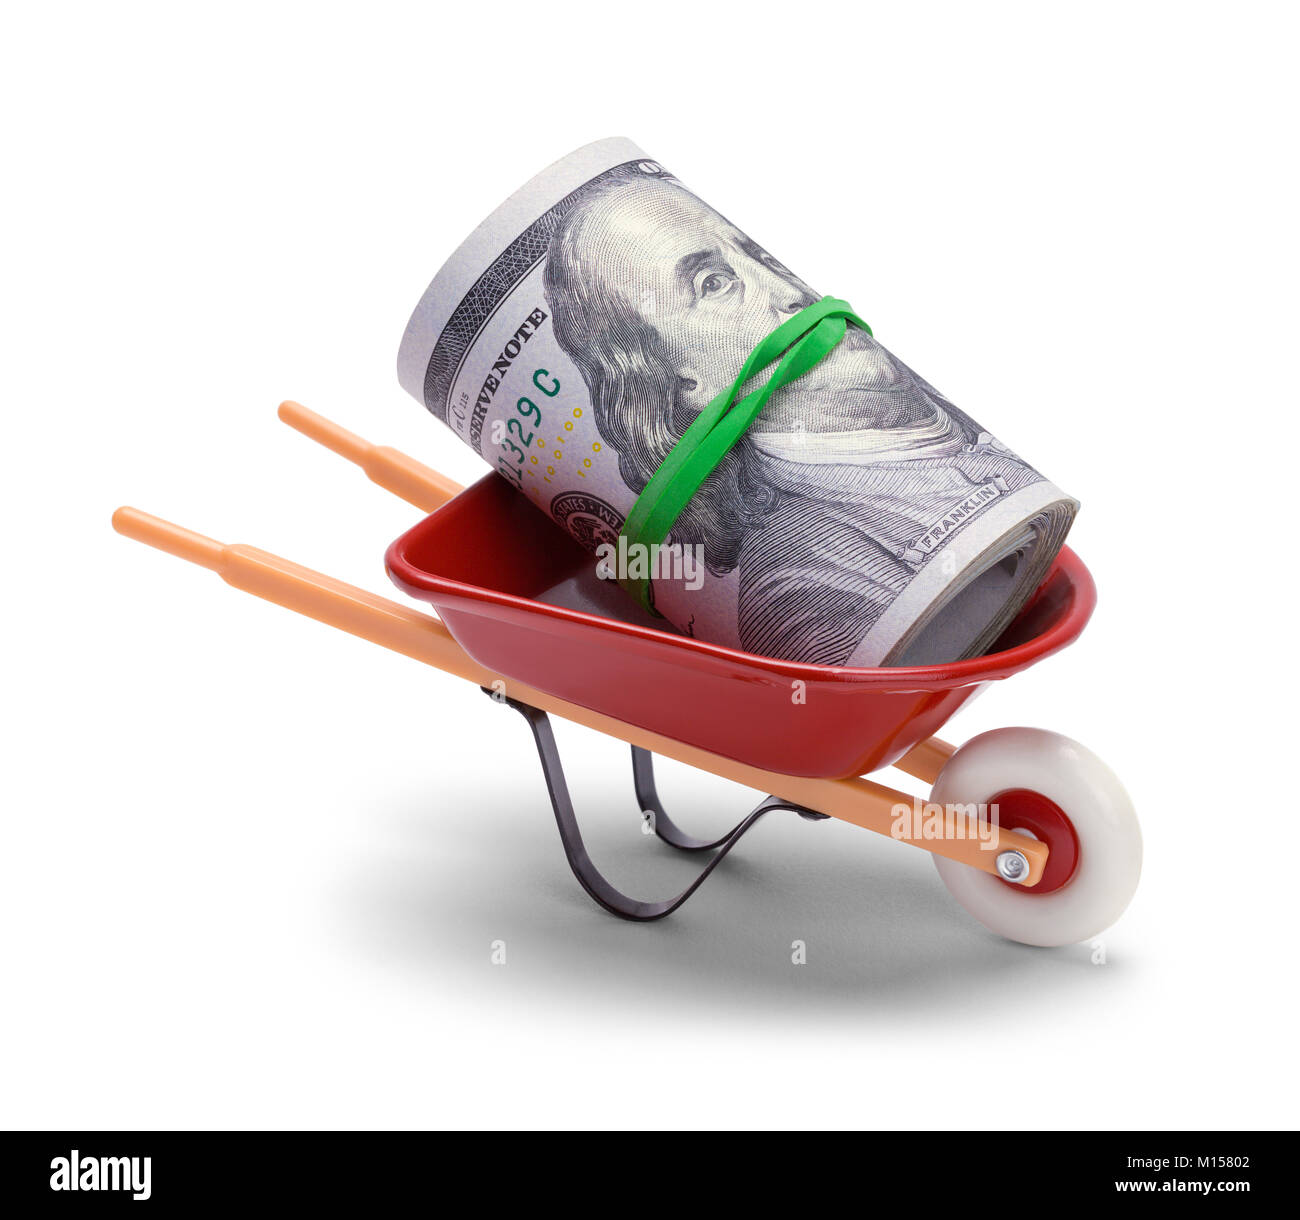 Red Wheel Barrow With a Roll of Hundred Dollar Bills. - Stock Image